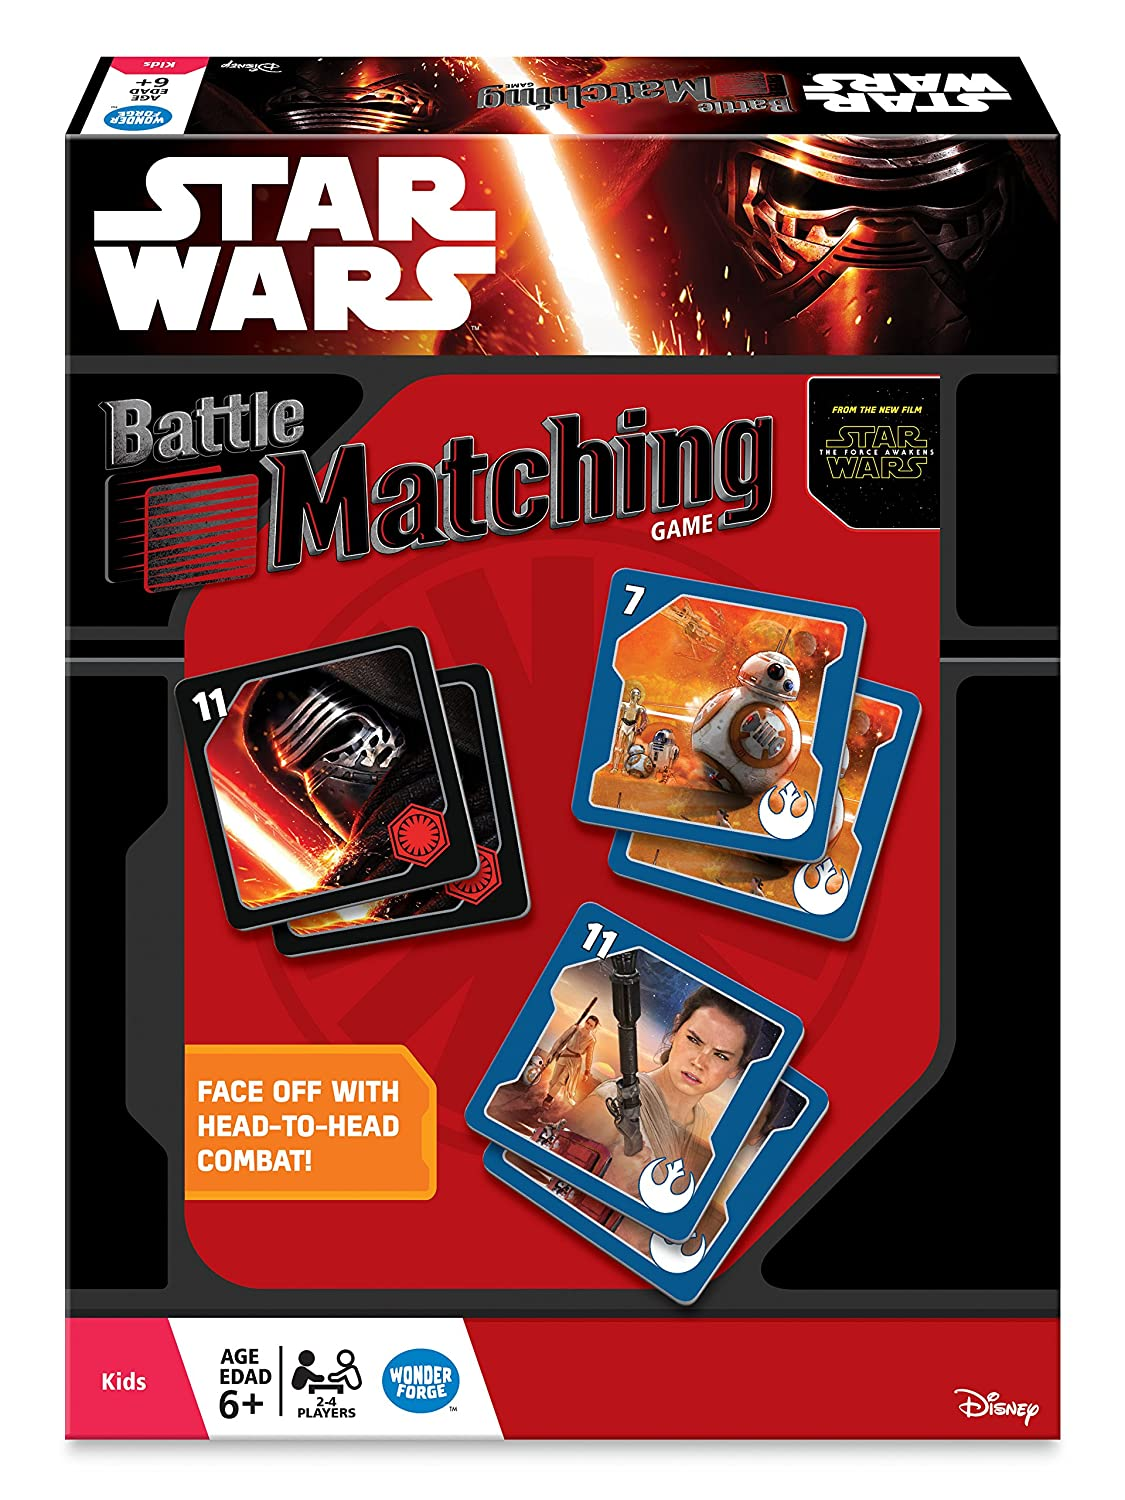 The Wonder Forge WON 1415 Star Wars The Force Awakens Battle Matching Game